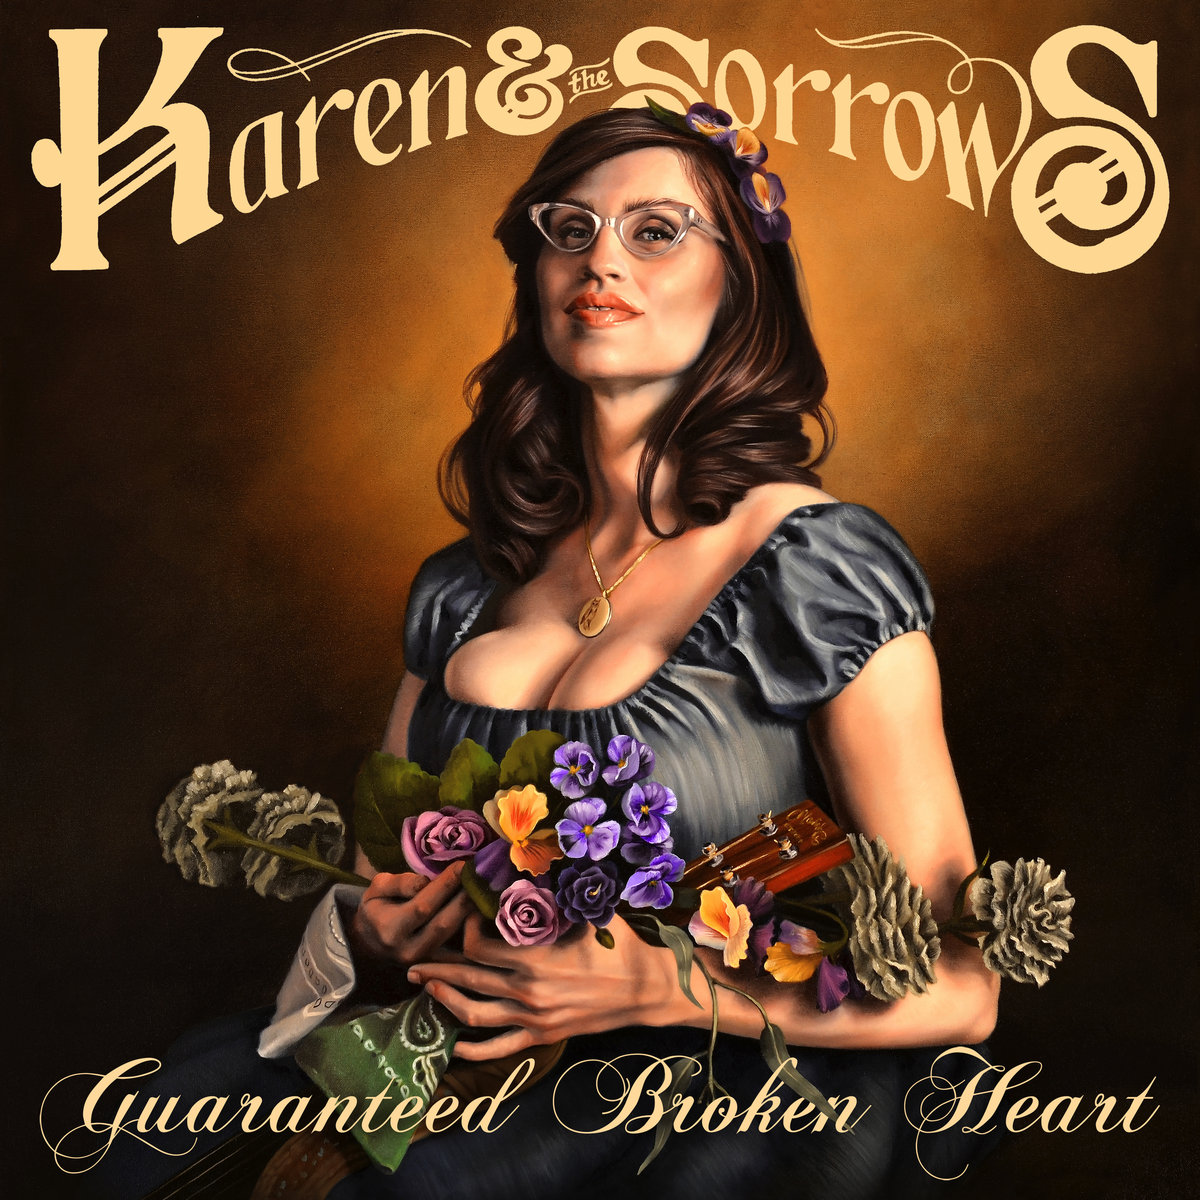 Karen & The Sorrows - Guaranteed Broken Heart album cover painted by Amanda Kirkhuff